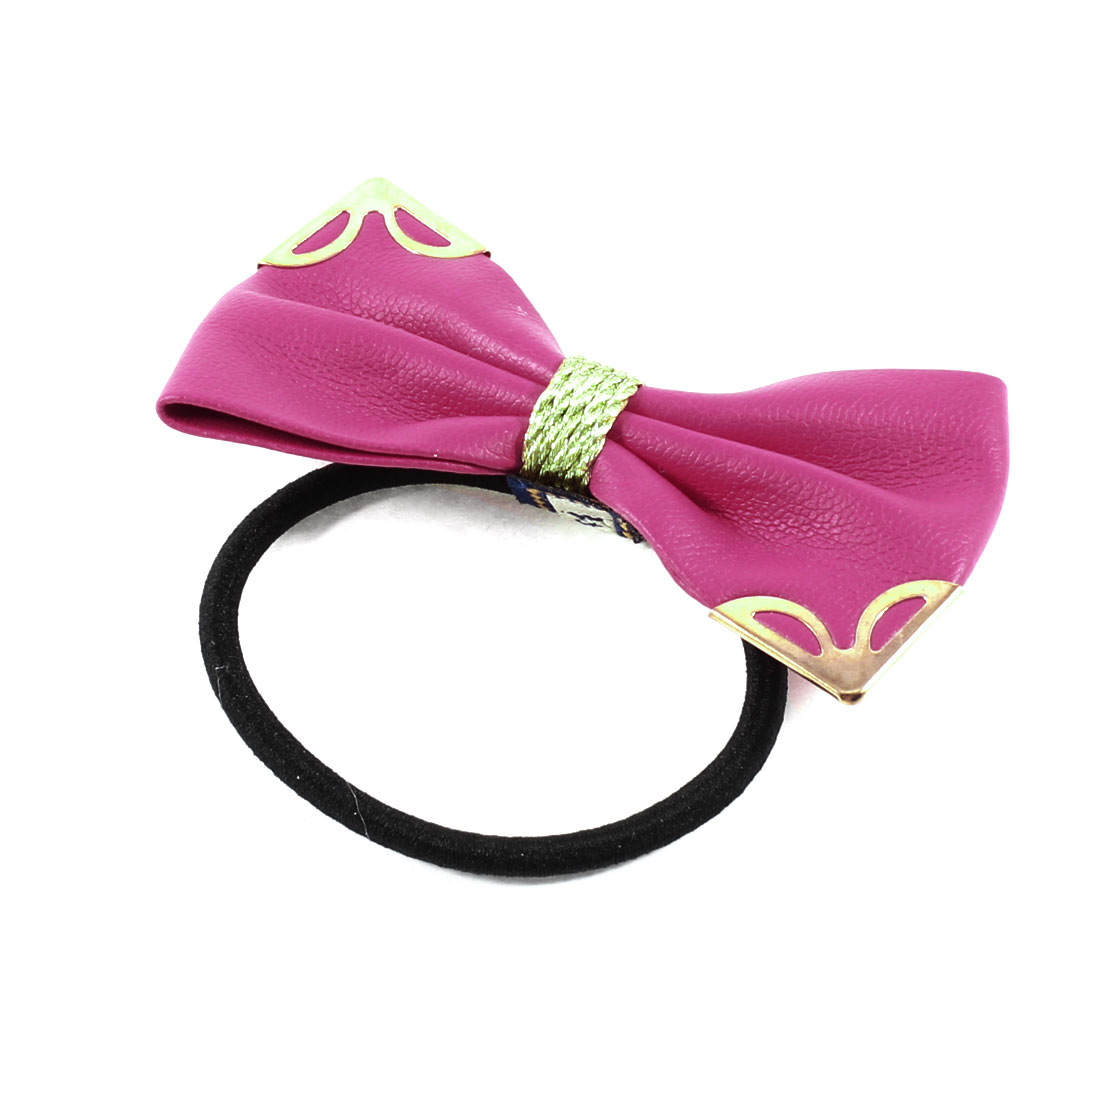 Metallic Decor Fuchsia Butterfly Knot Hair Rubber Band Ponytail Holder